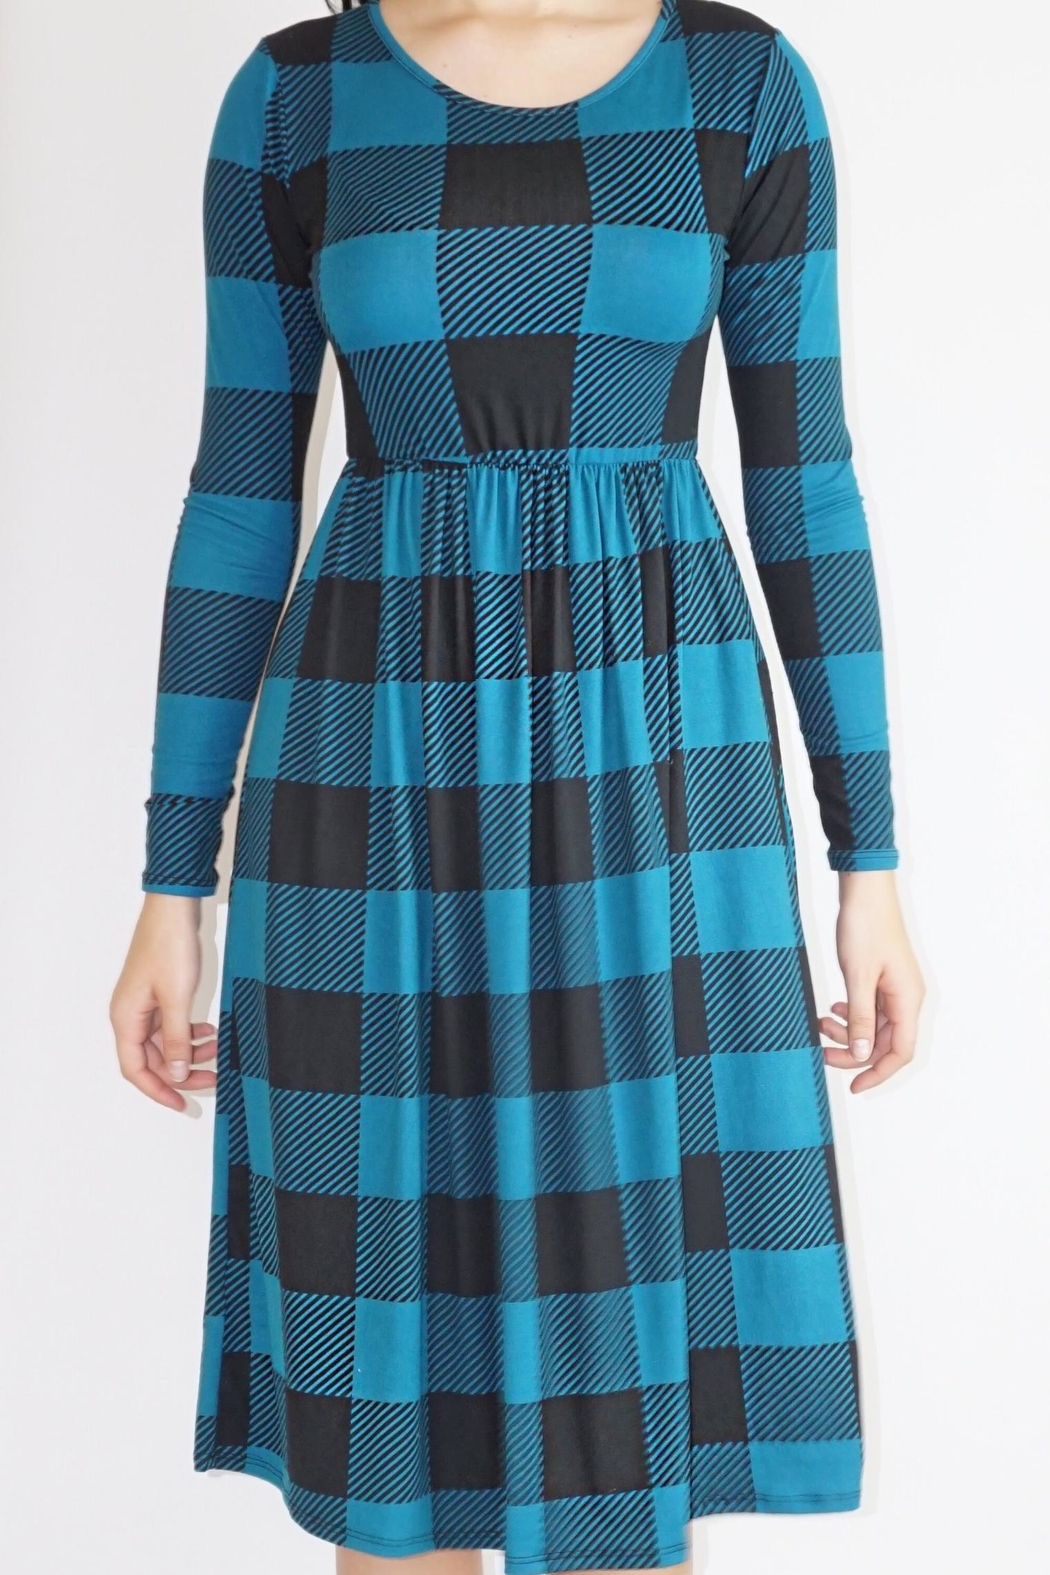 annabelle Teal Checkered Dress - Main Image